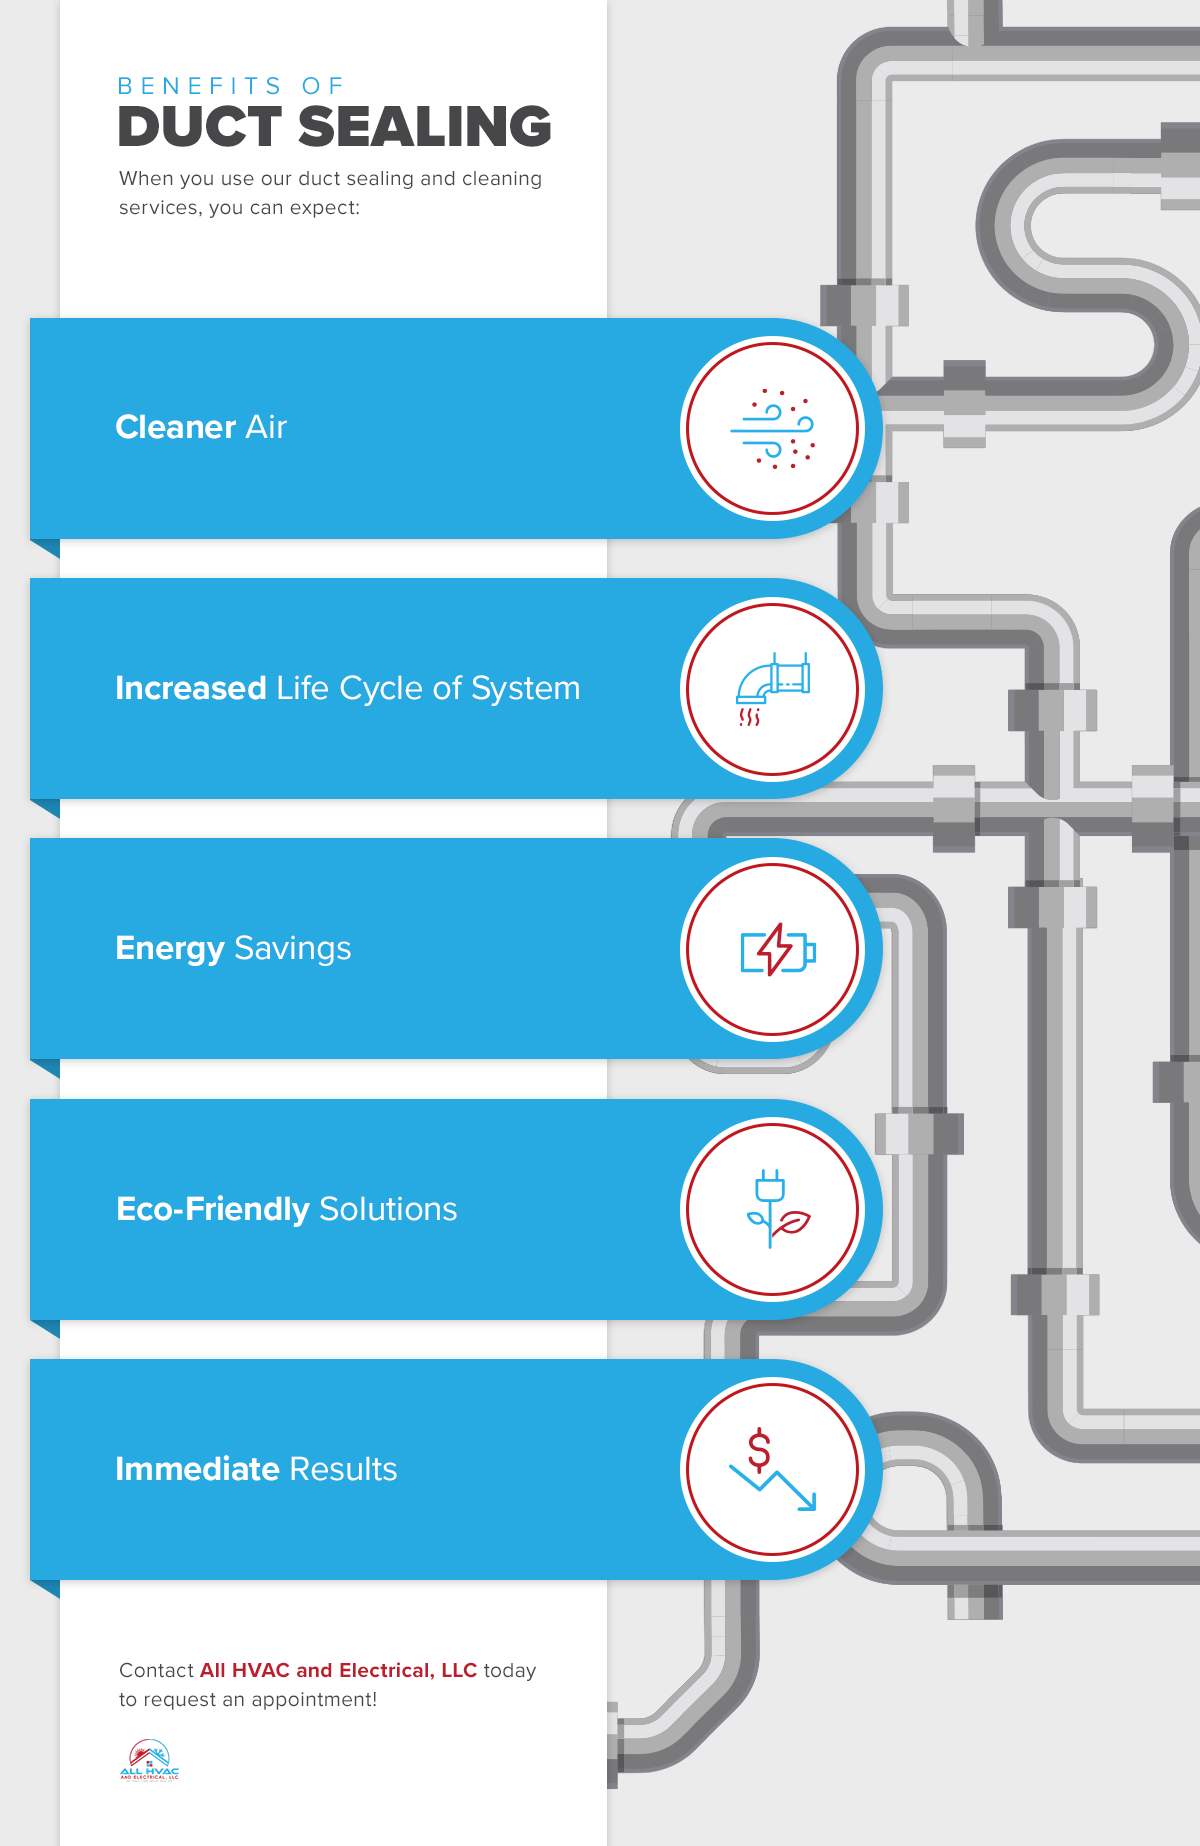 Benefits Of Duct Sealing - infographic.png